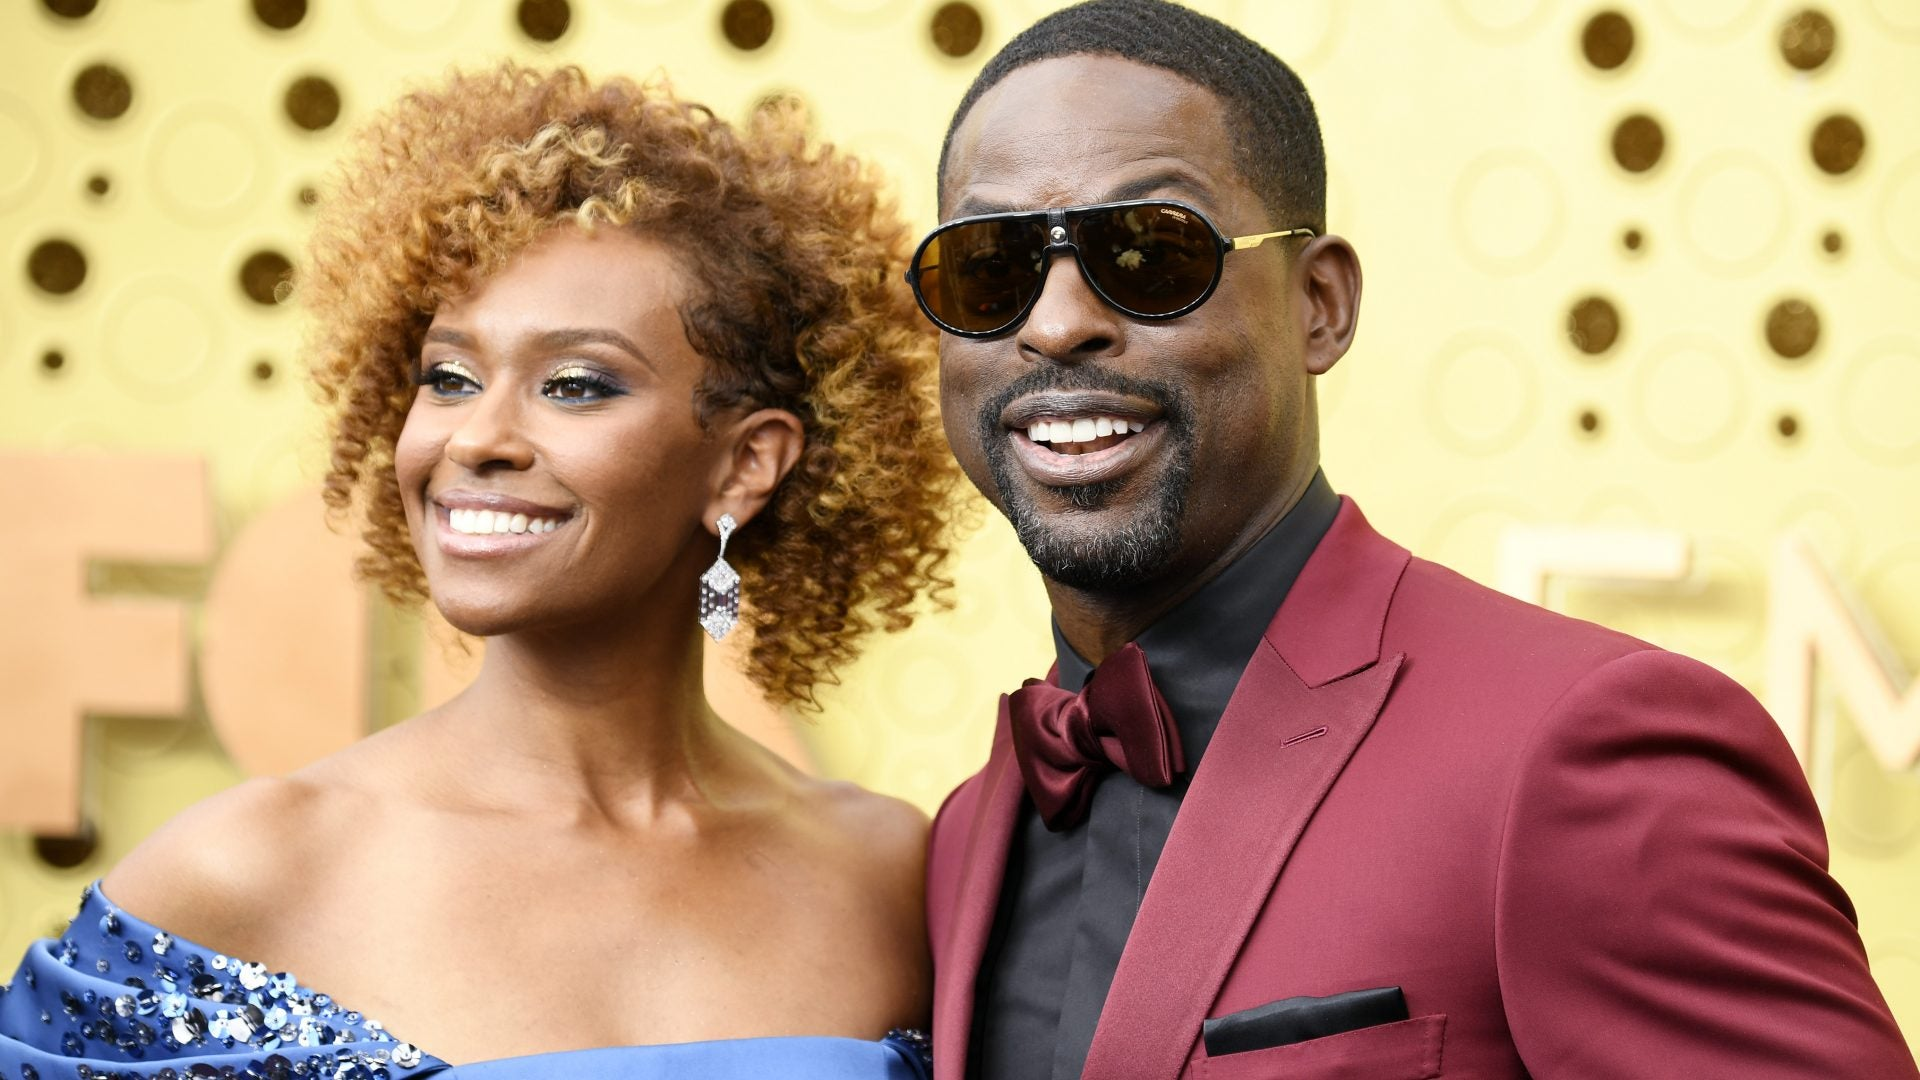 All The Black Celebrity Couples On The 2019 Emmys Red Carpet